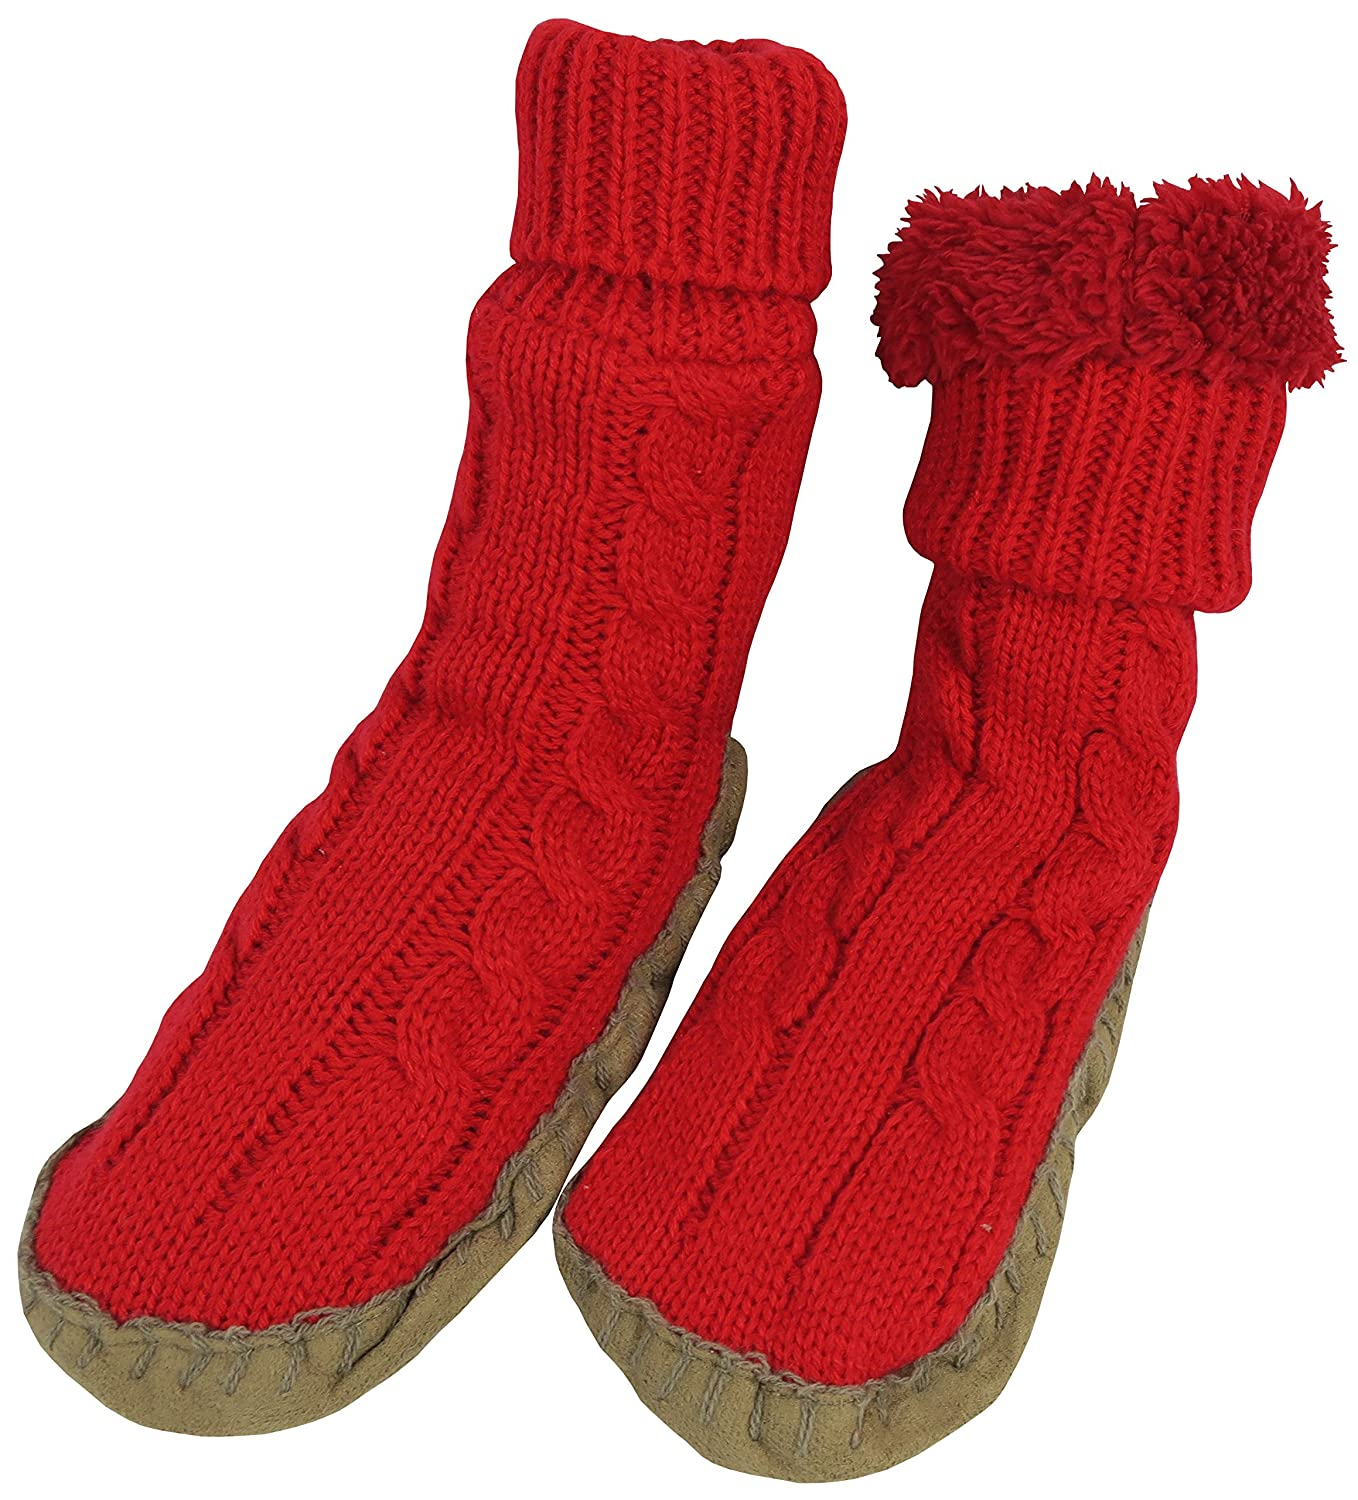 N'Ice Caps Women's Cable Knit Slipper Socks with Non-Skid Gripper Soles